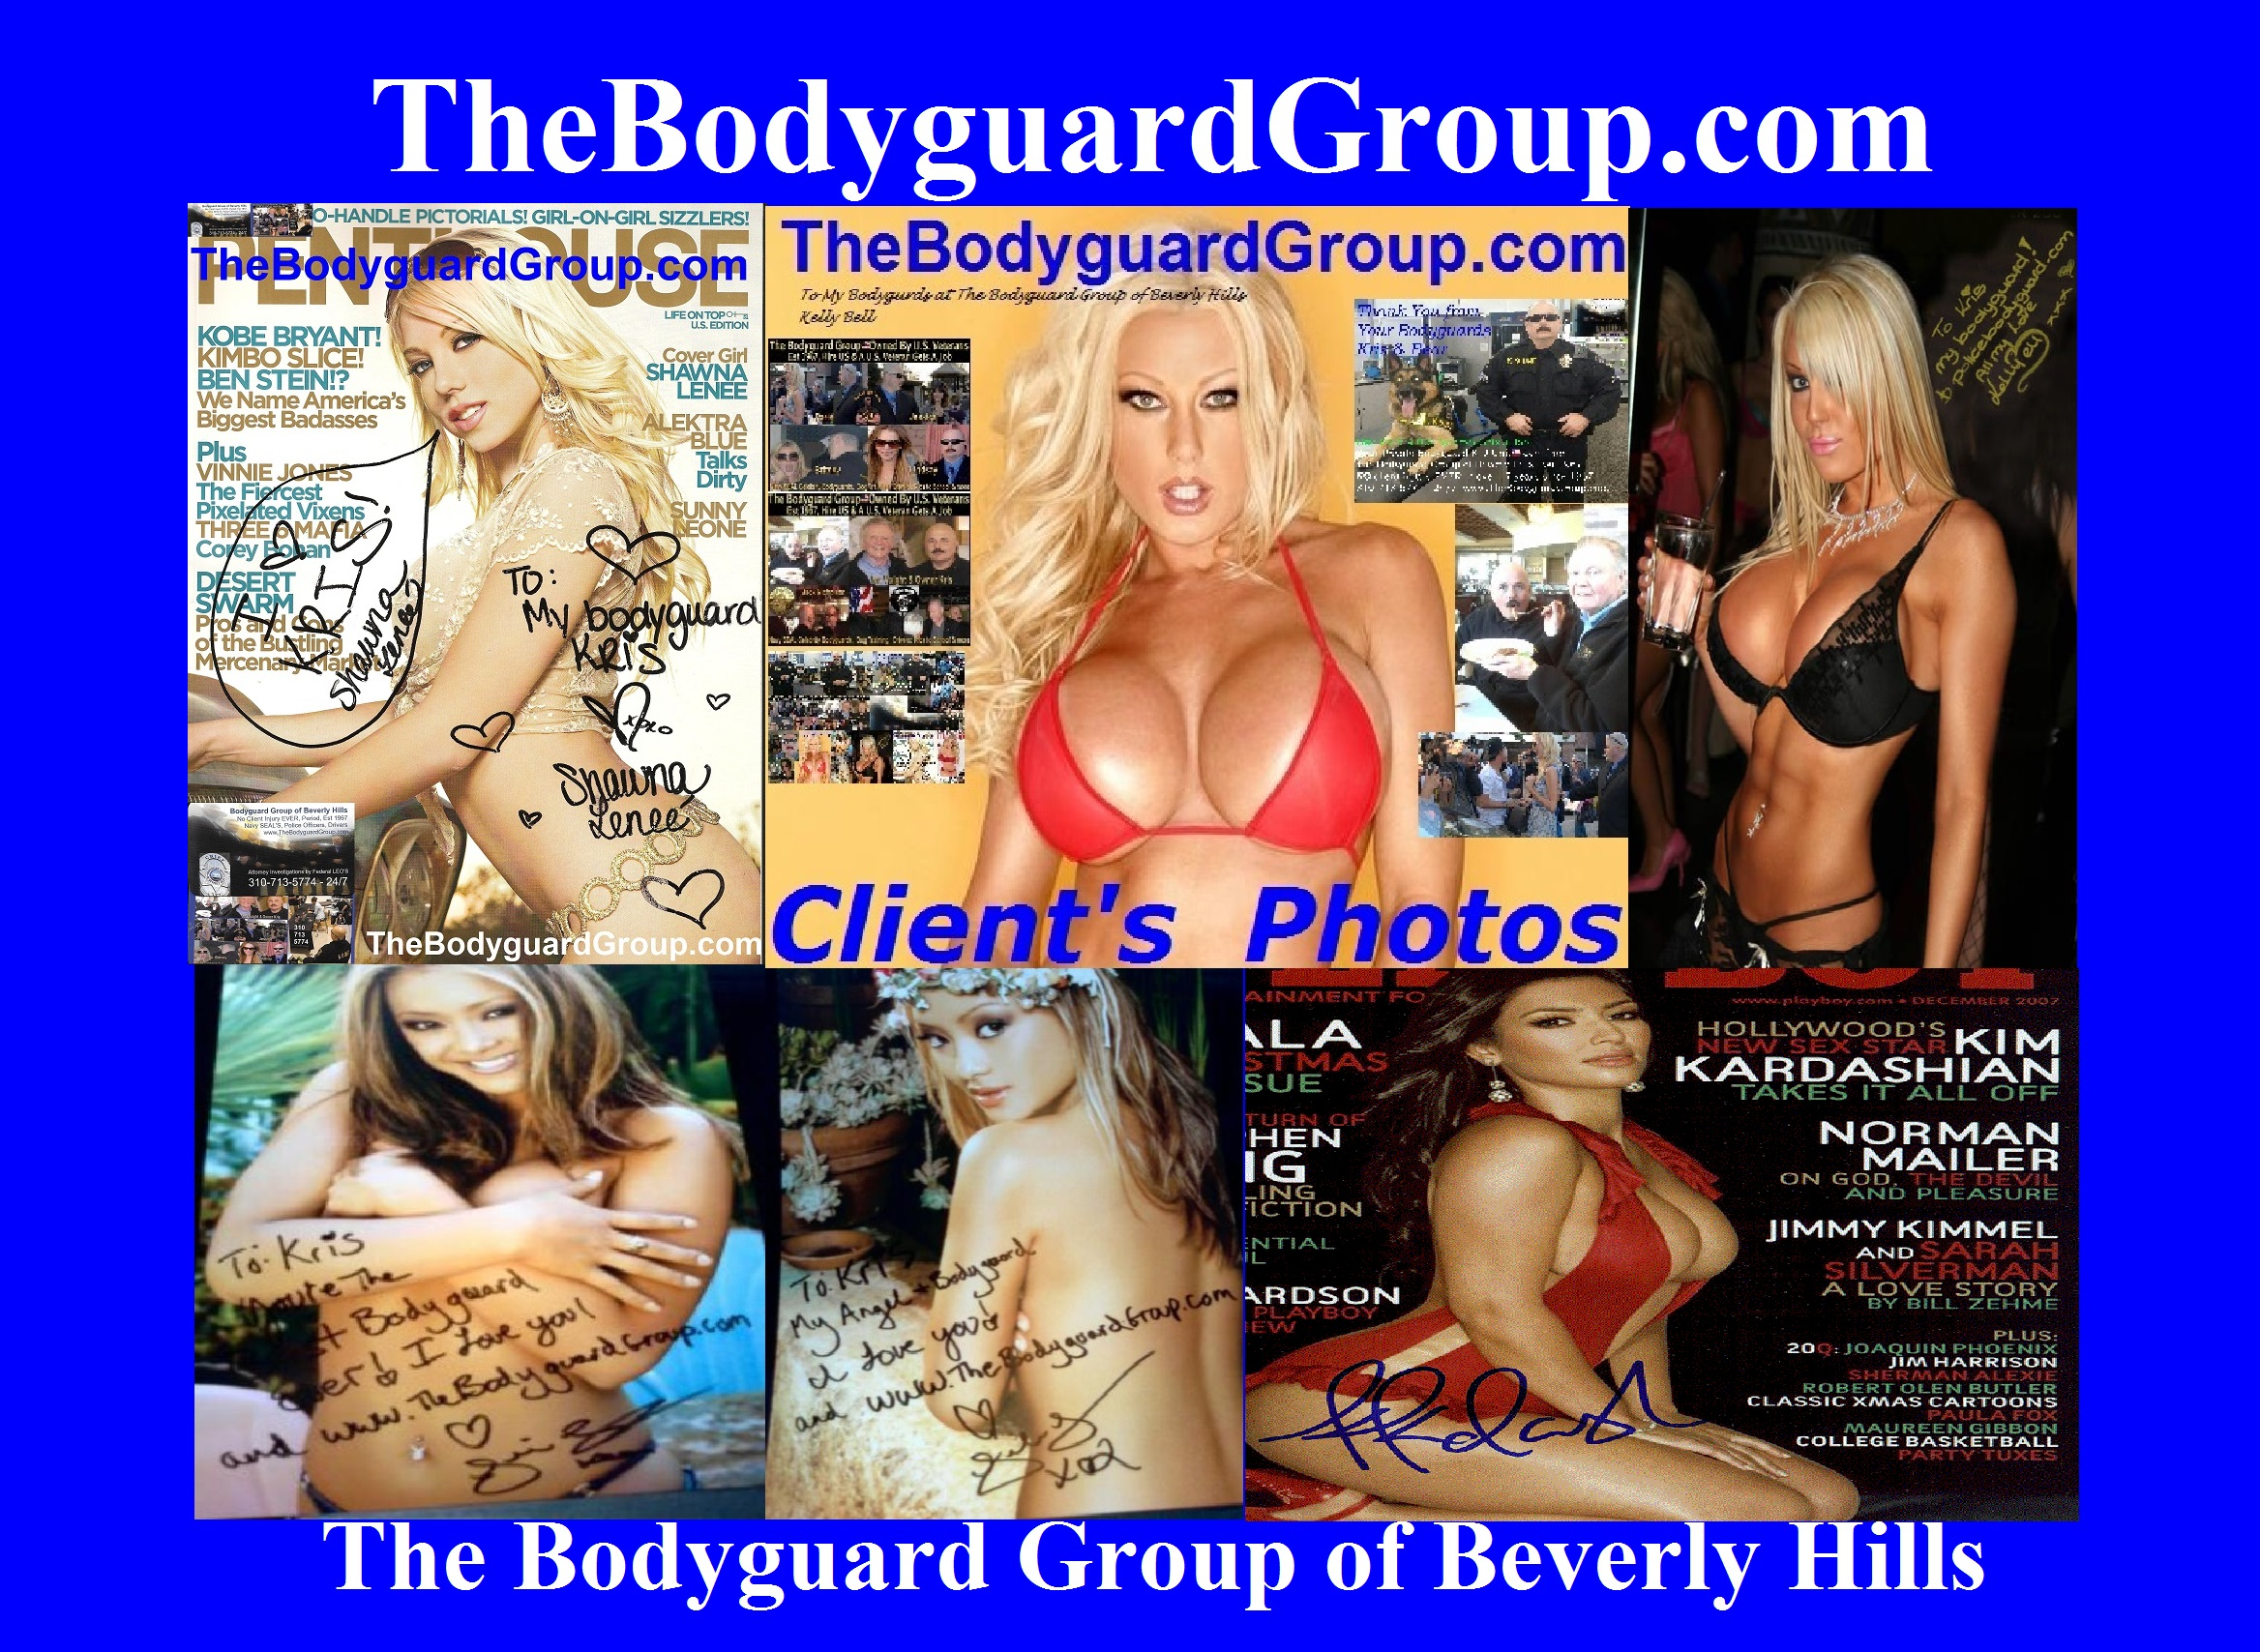 The Bodyguard Group of Beverly Hills security Billionaire Bodyguards 90210, Los Angeles, Celebrity Bodyguards for hire for hire